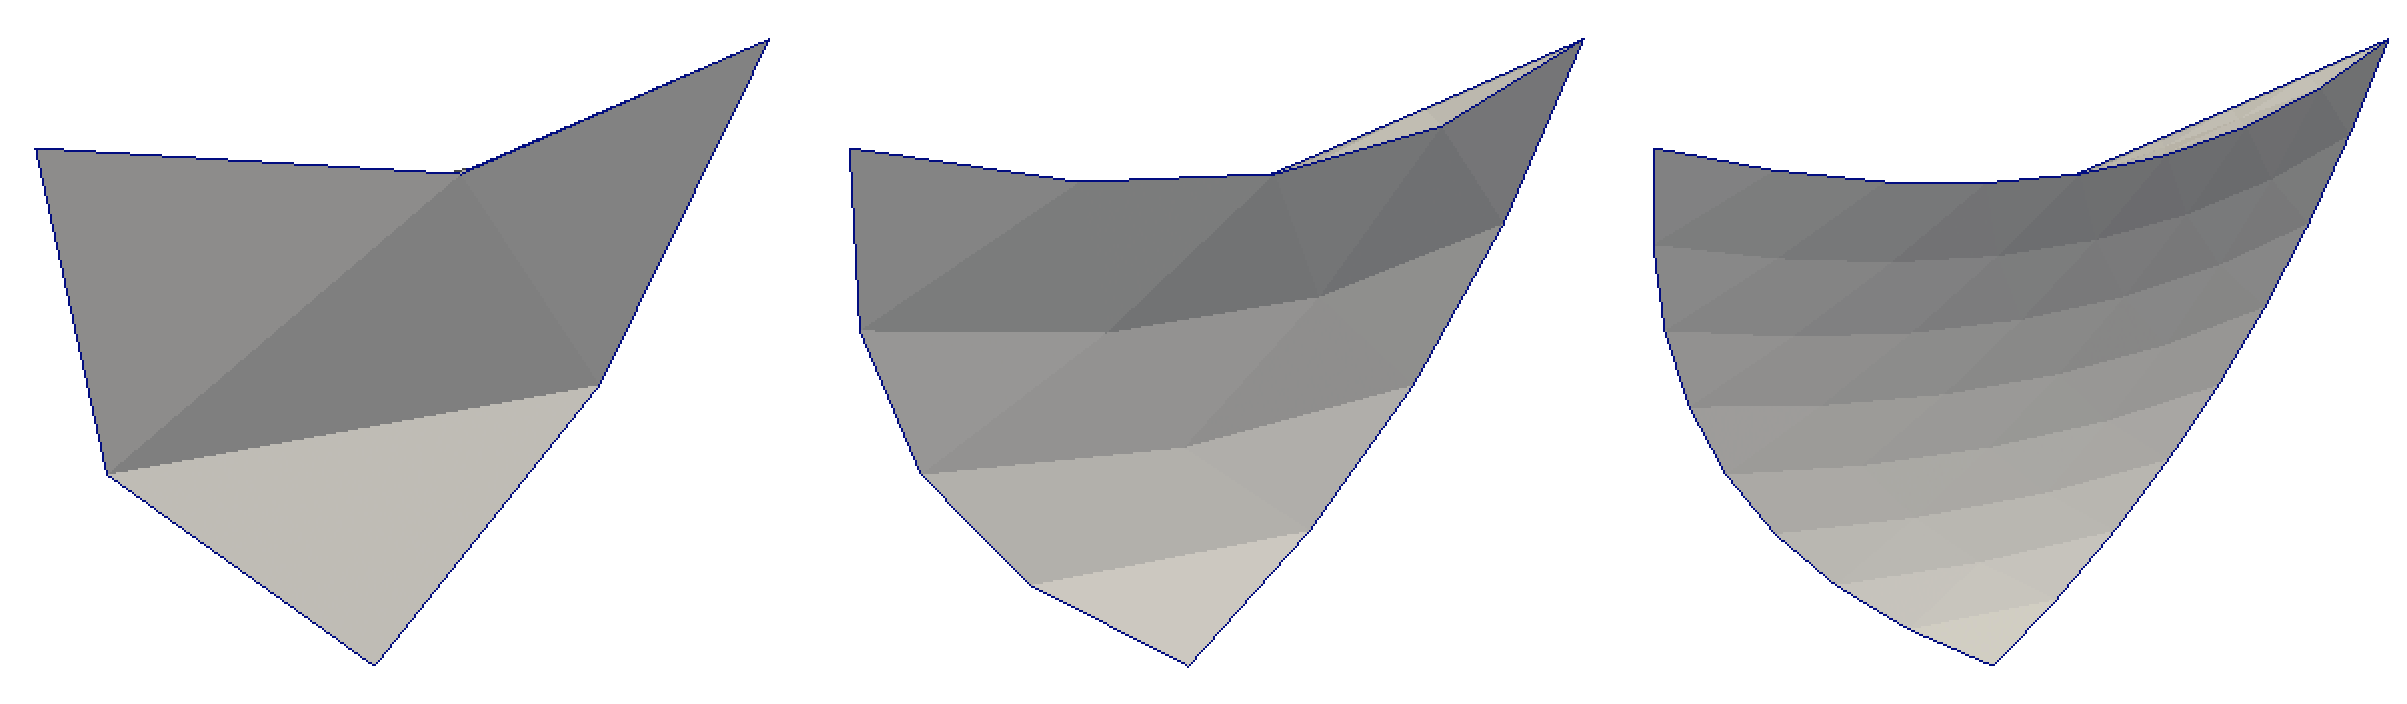 ParaView/Images/NonLinearSubdivision.png